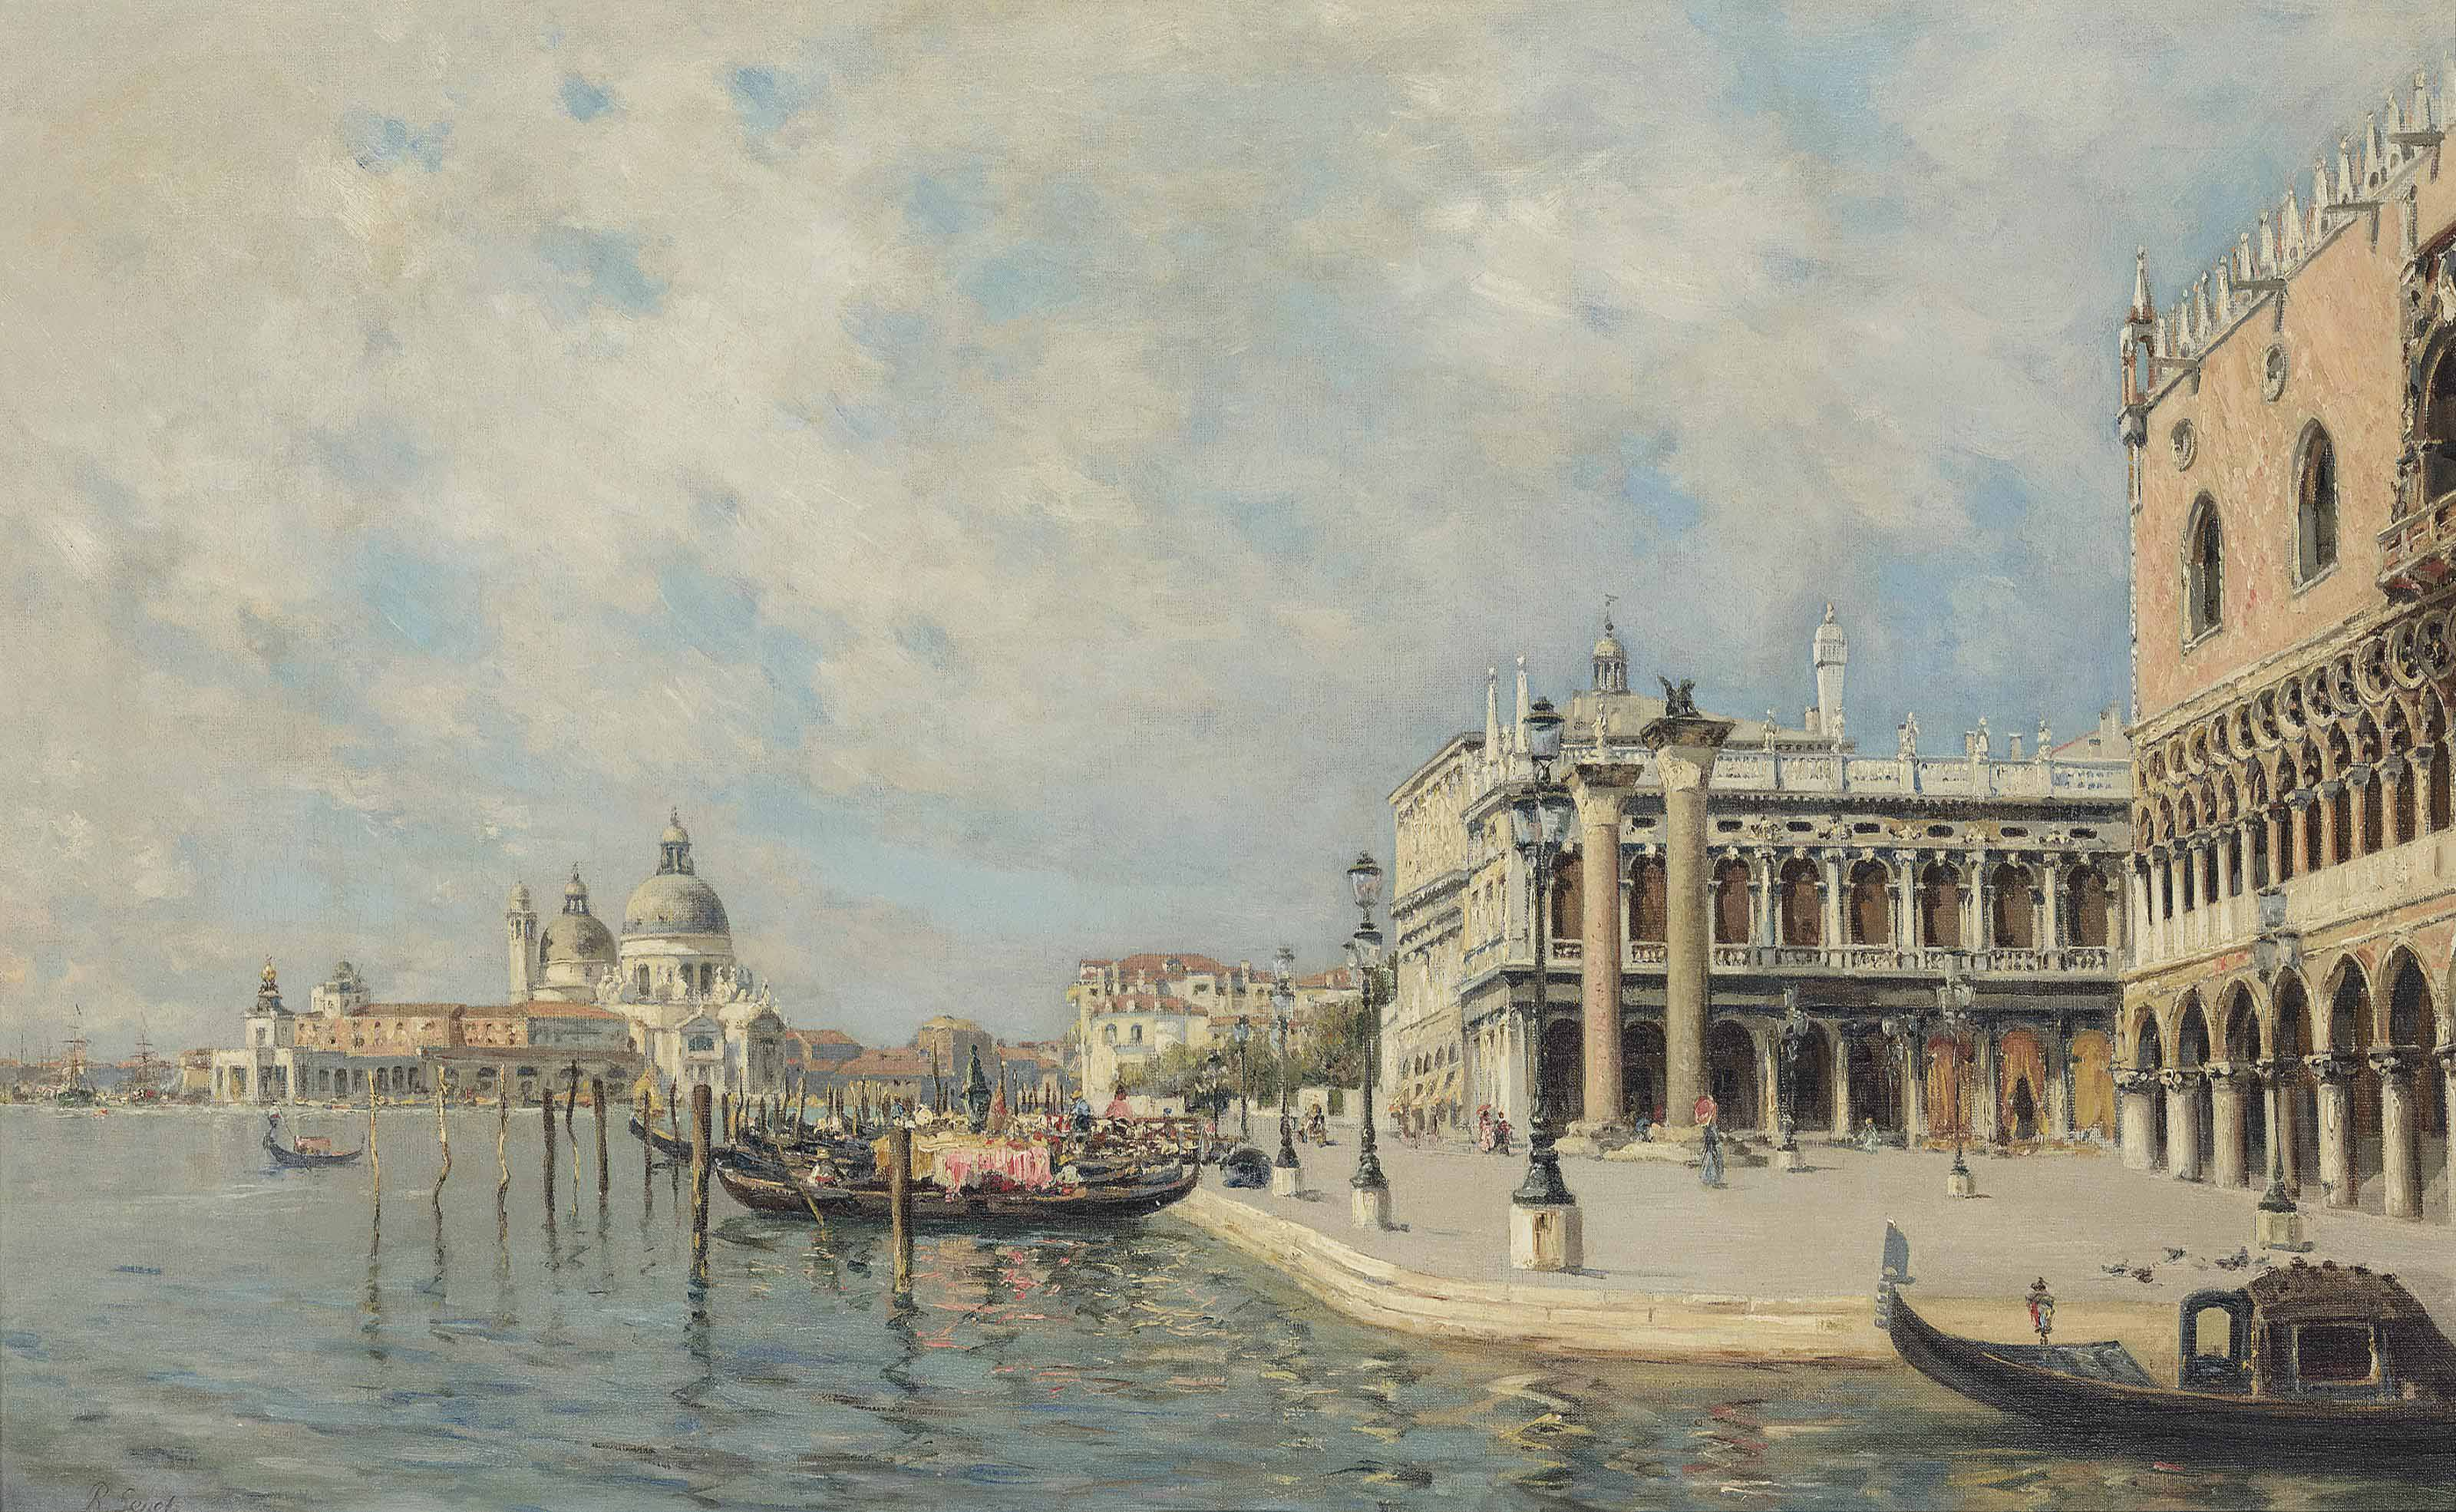 View towards St. Mark's Square with Santa Maria della Salute in the distance